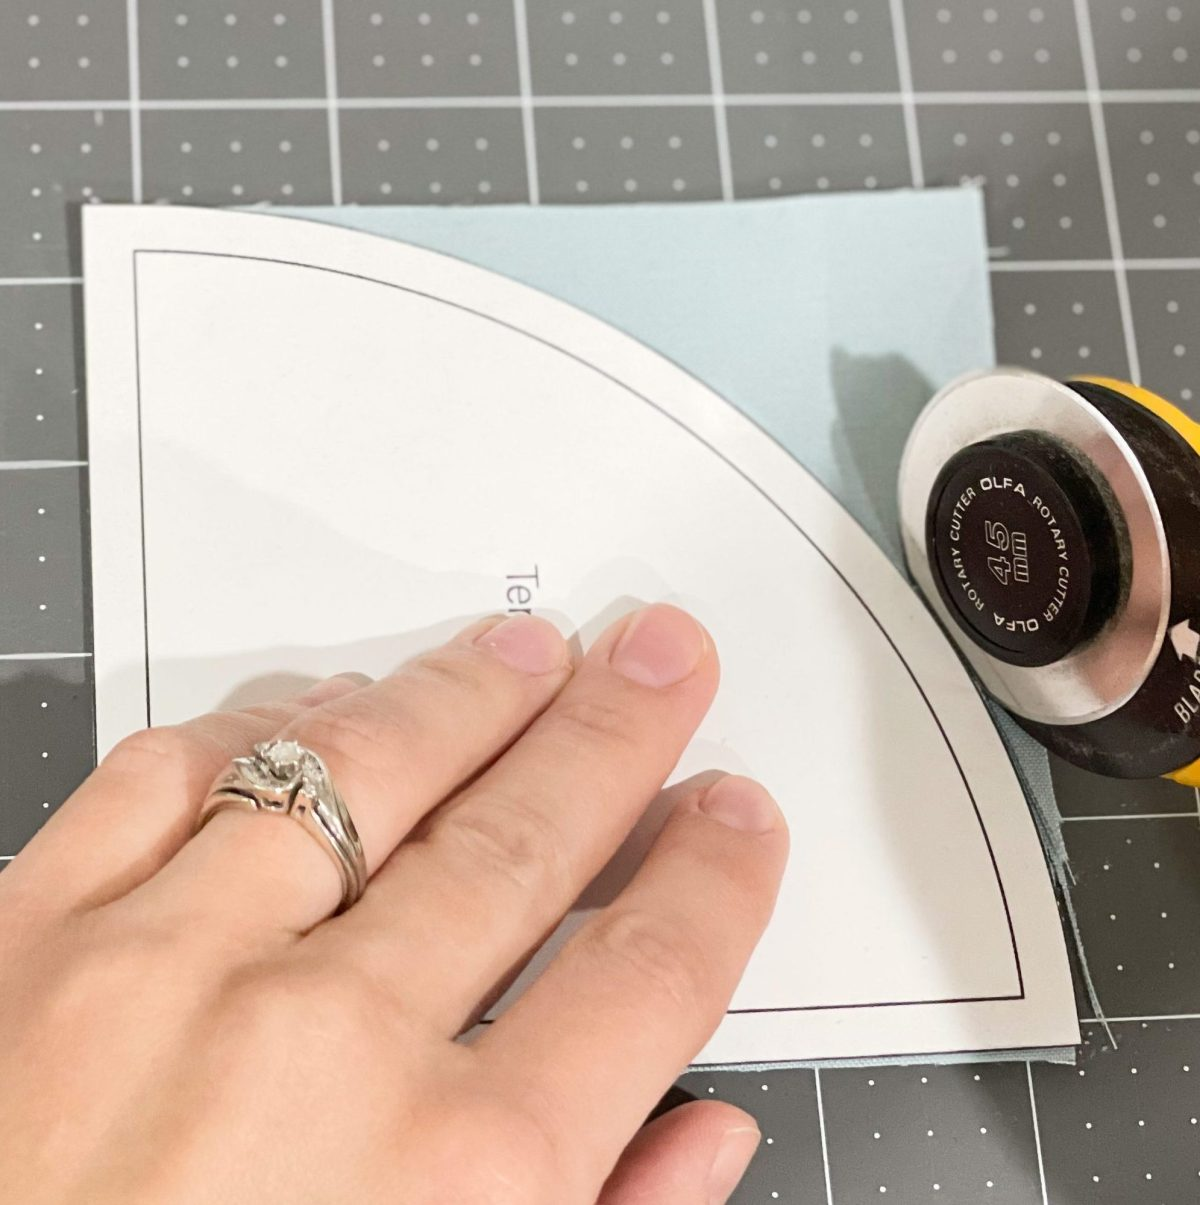 How to sew curves: Cutting along the curved template.